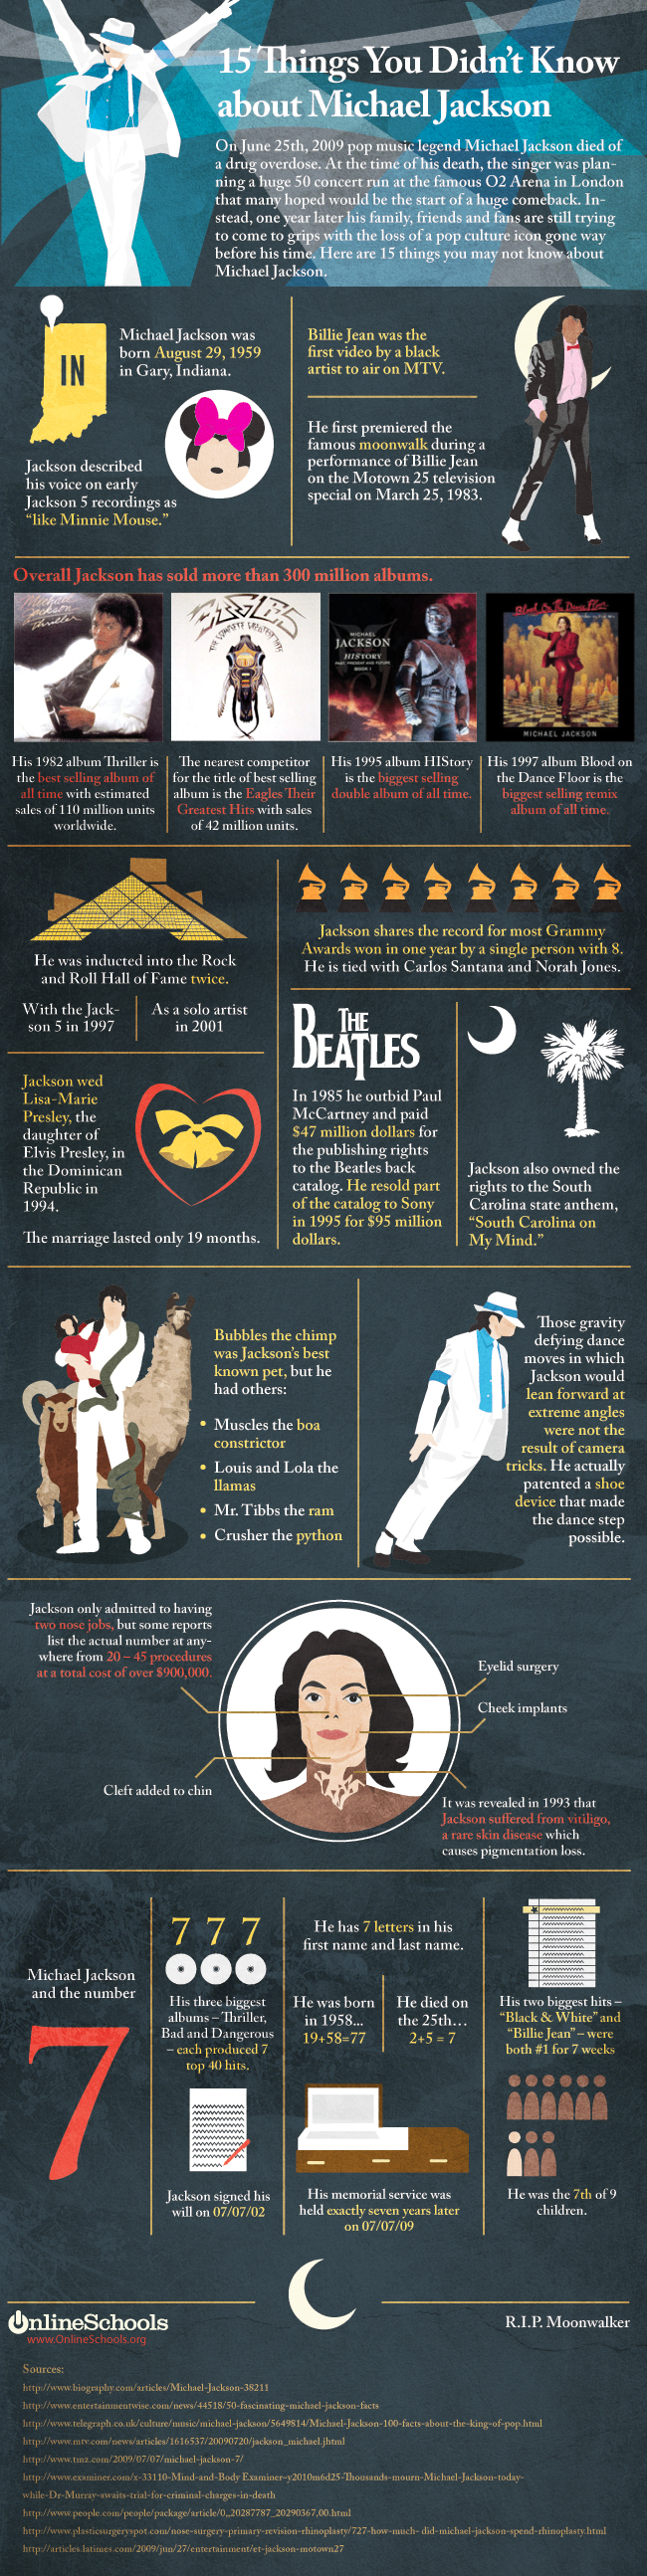 michael jackson trivia facts -the factoids infographic